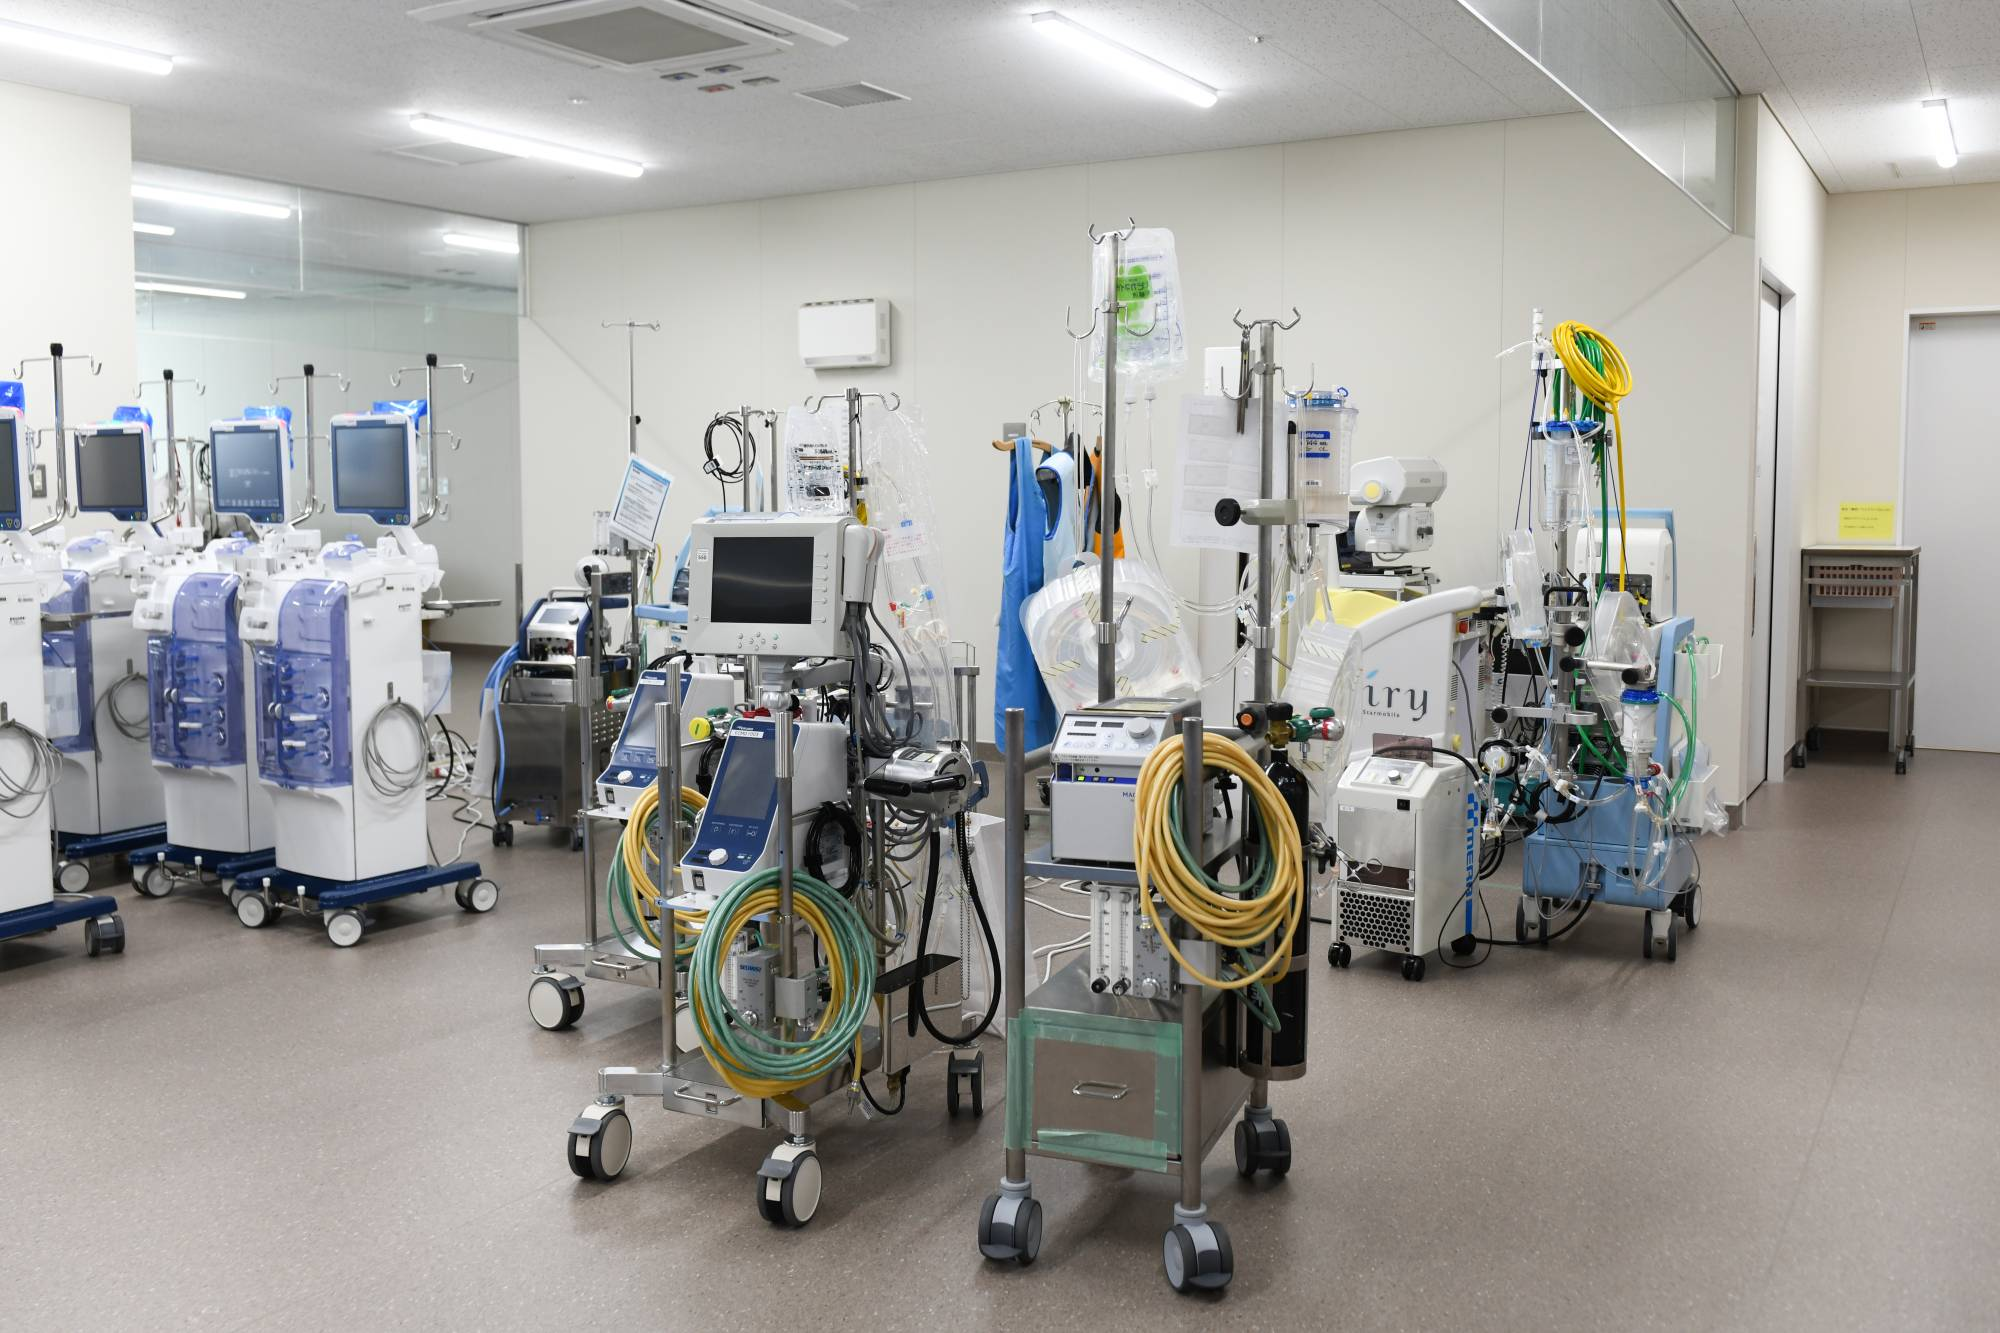 Medical equipment, including extracorporeal membrane oxygenation (ECMO) machines, sit in the intensive care unit at Chiba University Hospital in the city of Chiba on Wednesday | BLOOMBERG